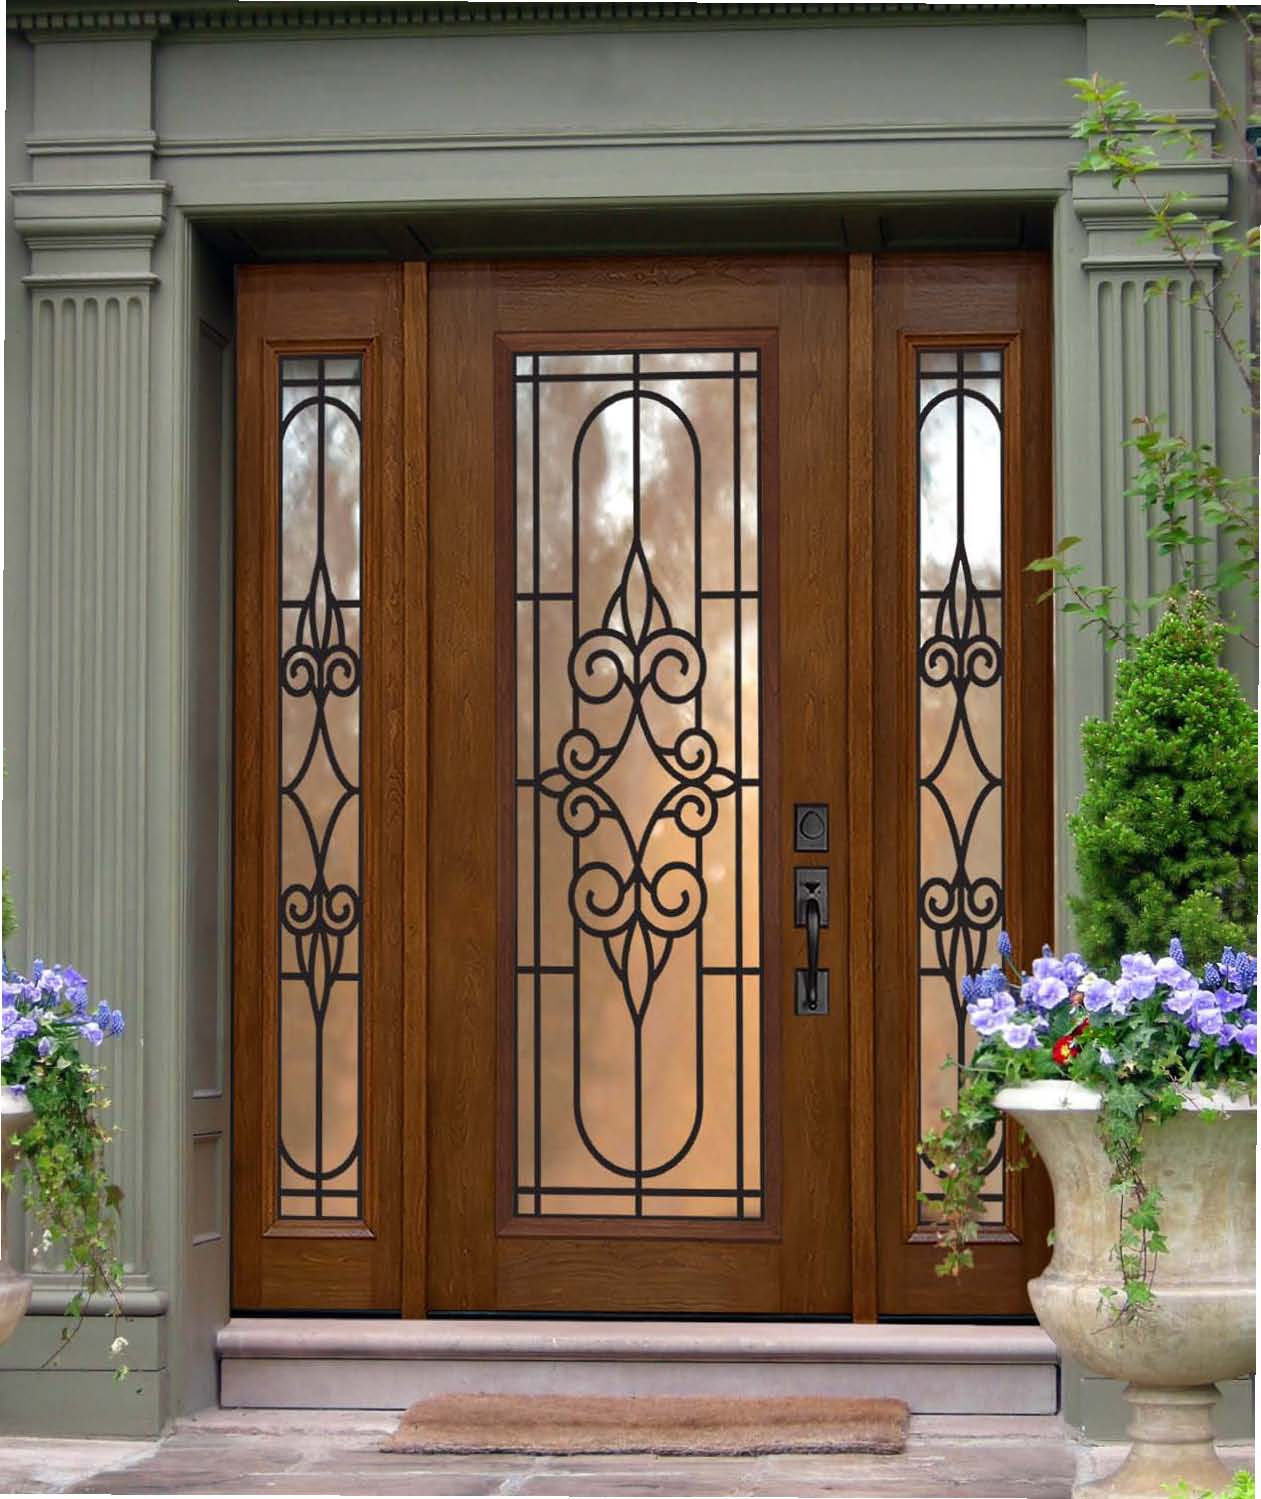 1499 #613B1E US Door And More Inc.: Make Your Entry Door Trendy With Sidelights picture/photo Fibreglass Entrance Doors 41391261